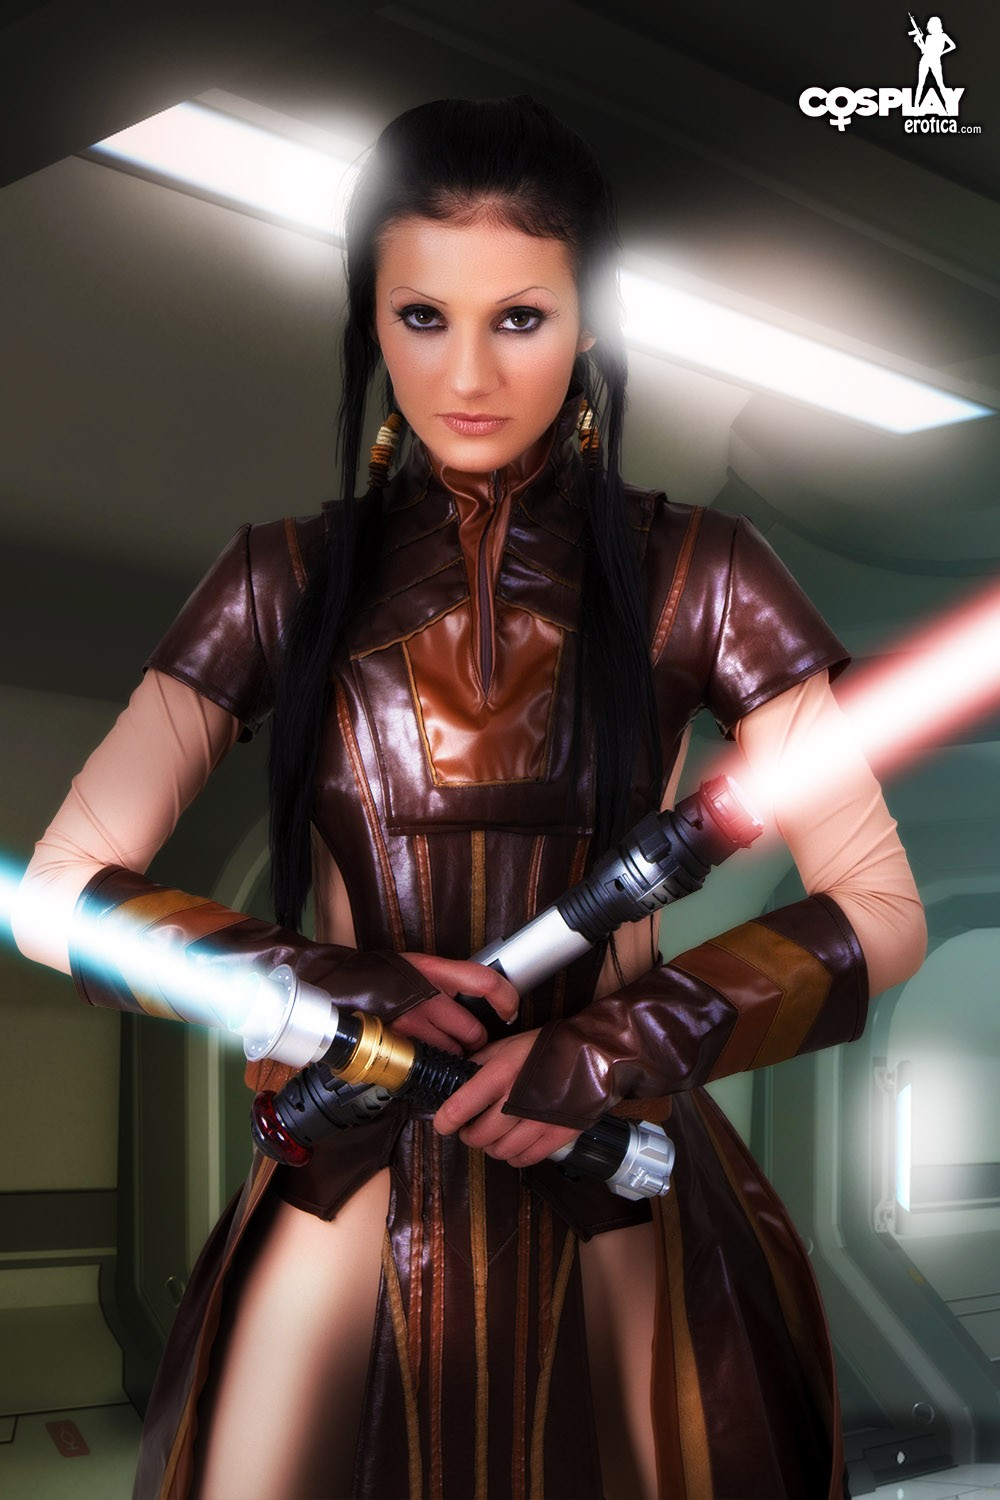 Hot nude star wars cosplay anime tube